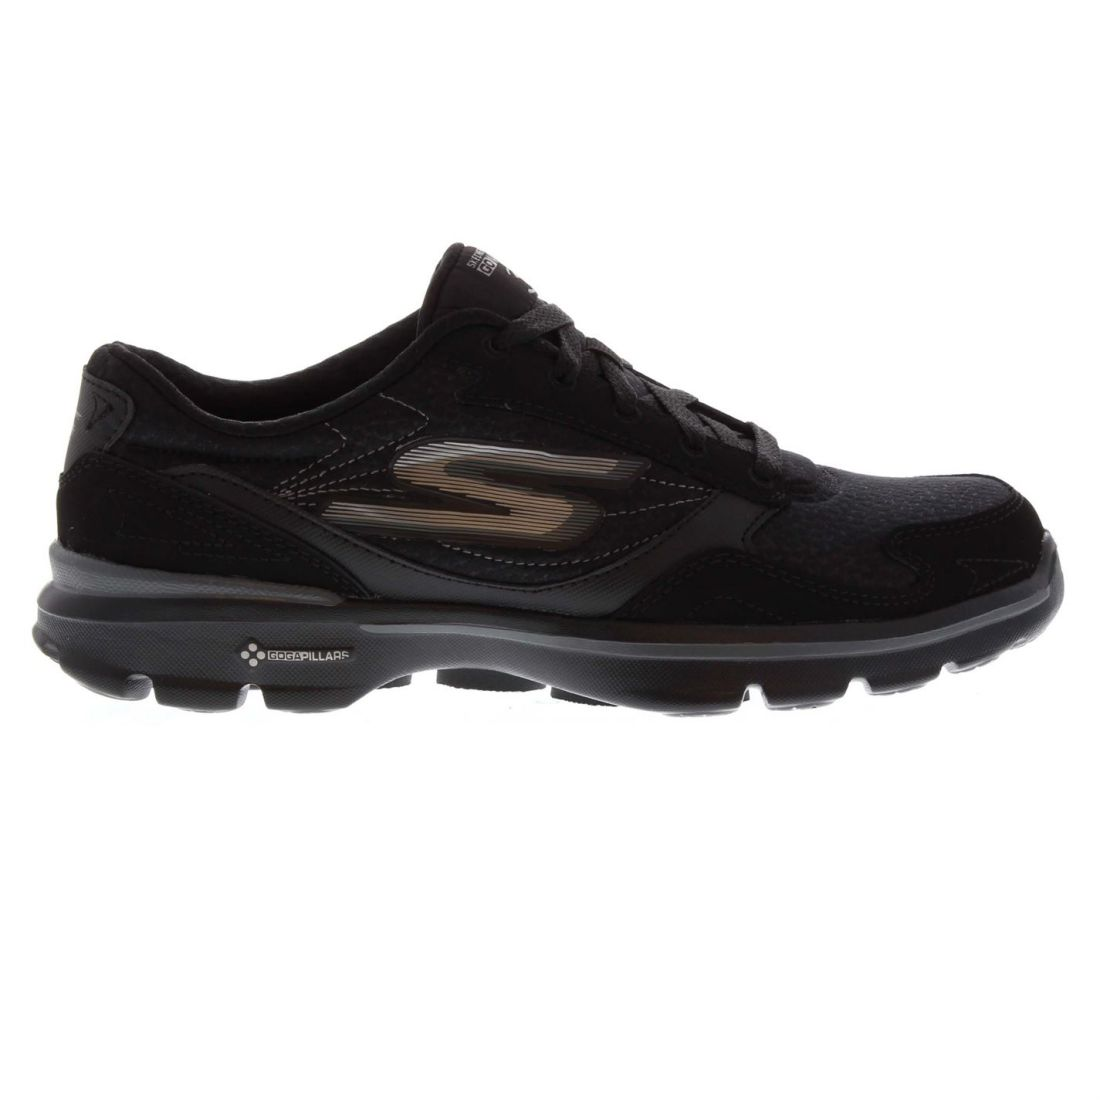 4bb4bfed6d4c Image is loading Womens-Skechers-Go-Walk-3-Trainers-Low-Lace-